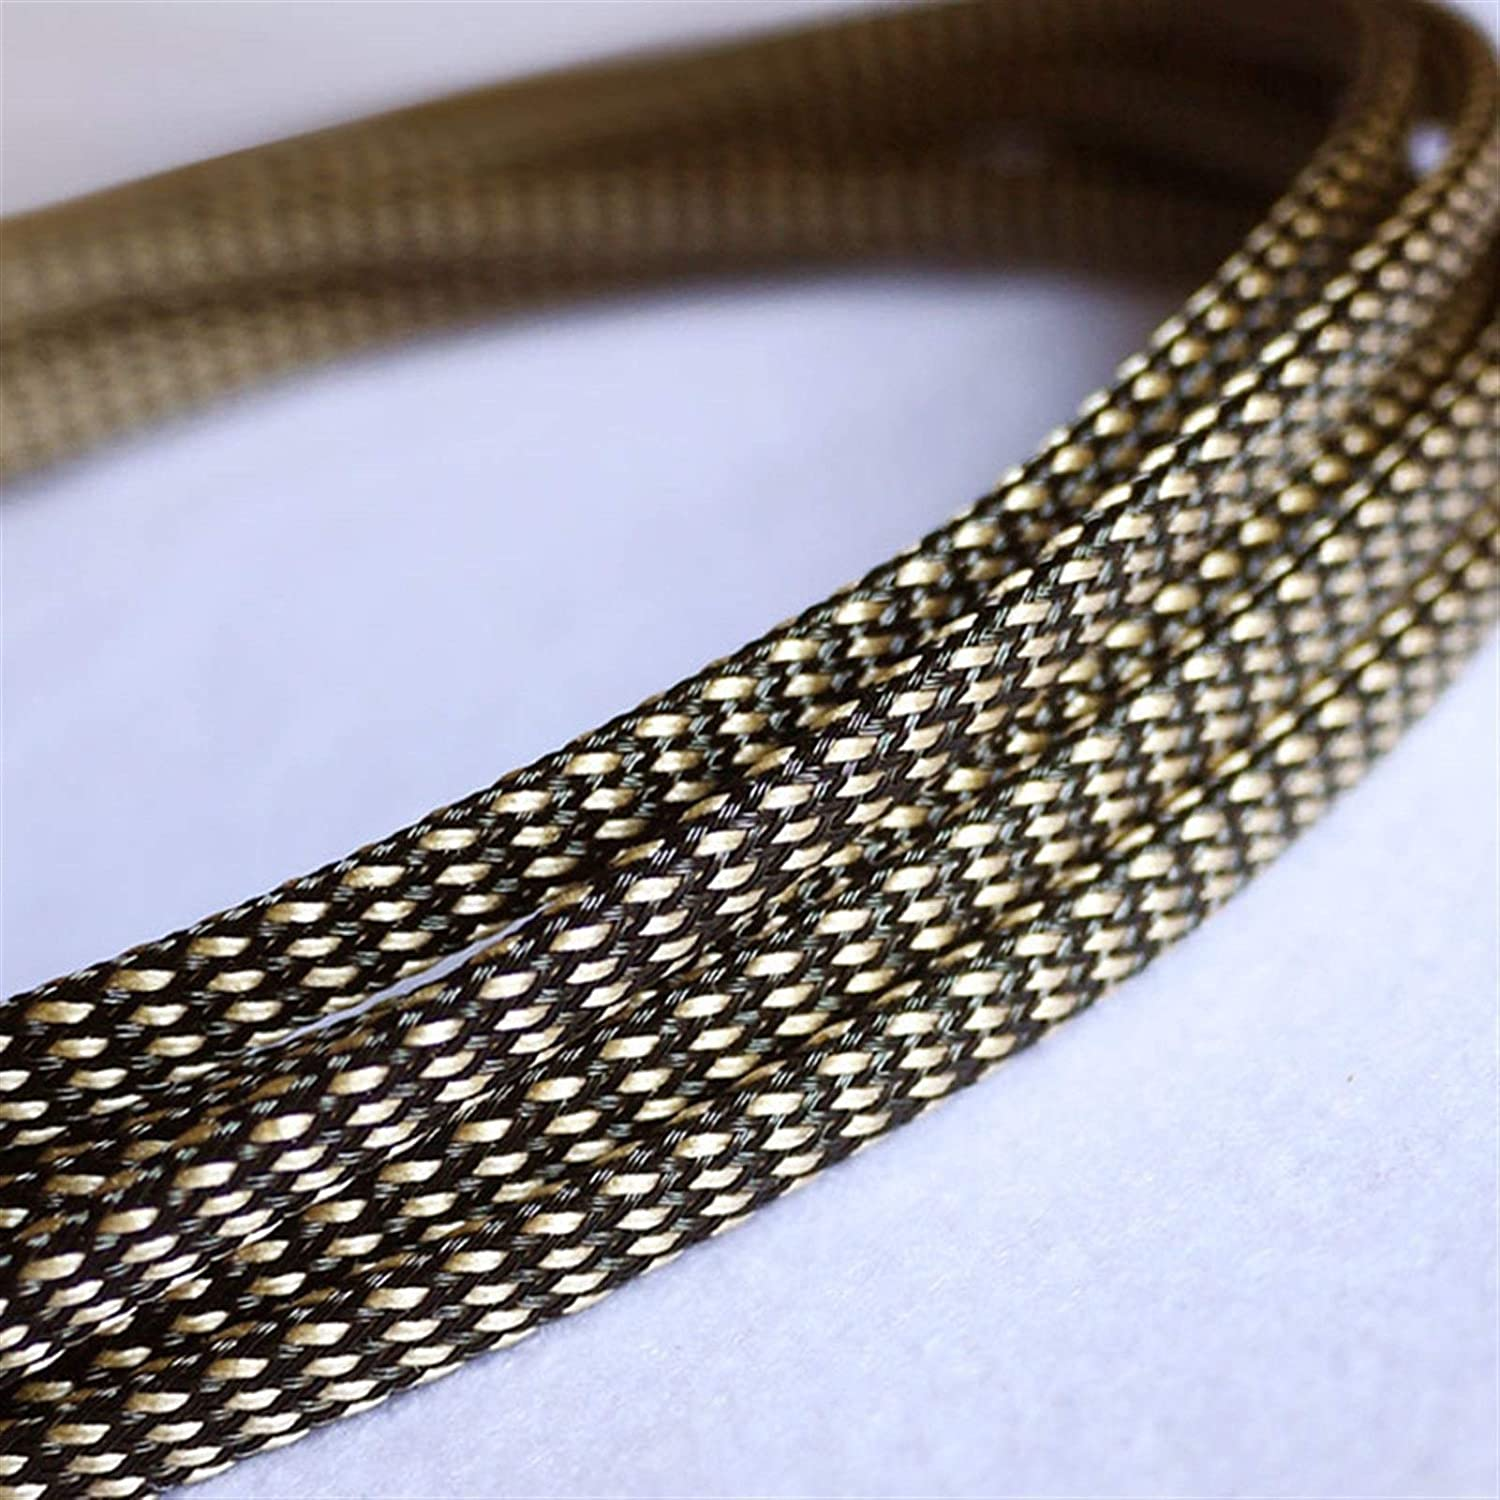 Cable Tidy Sleeves Length 1-50M discount Snakeskin 5 ☆ popular Mesh Wi